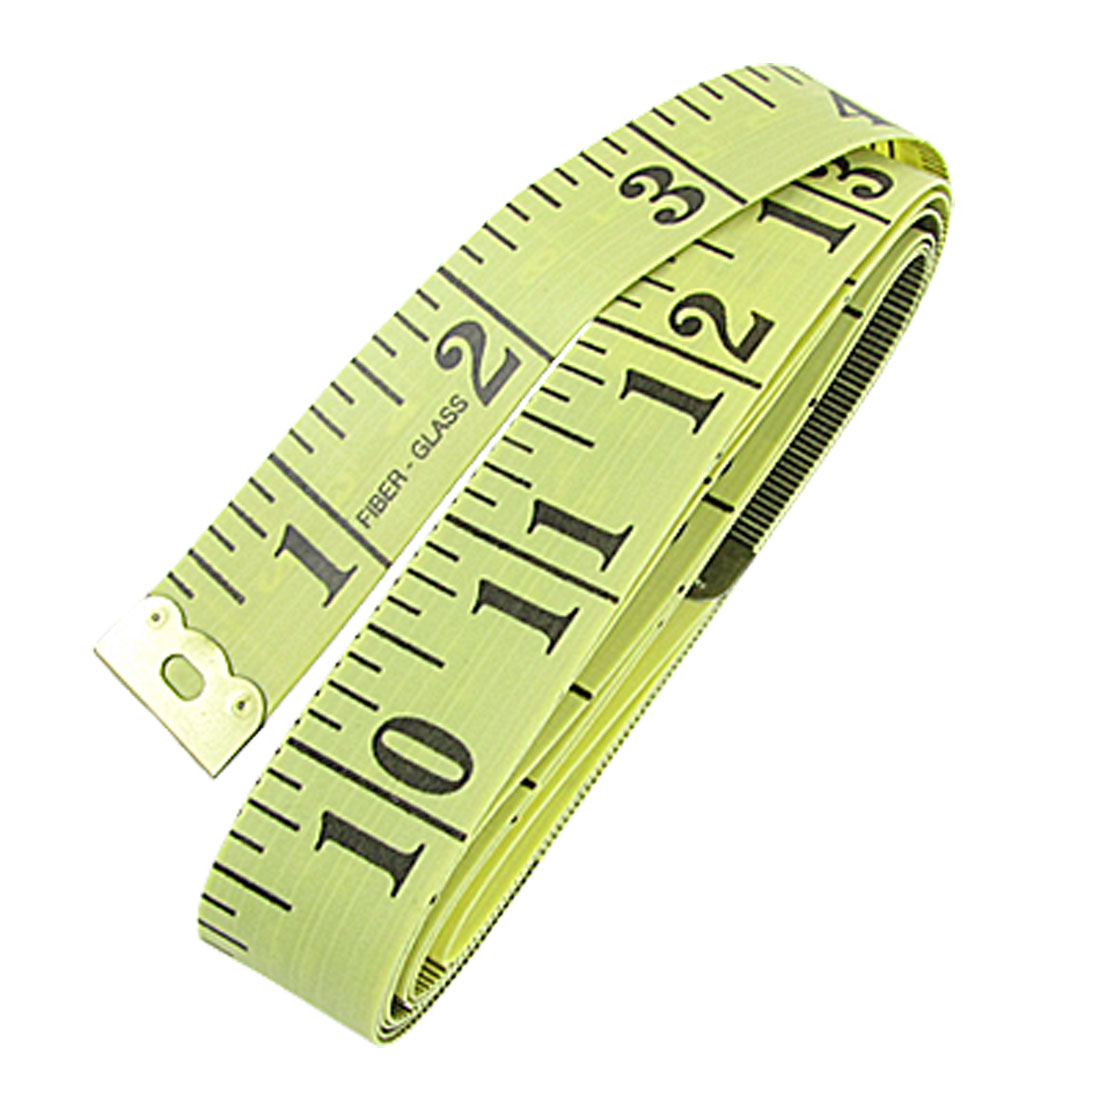 Free Metric Ruler Cliparts, Download Free Clip Art, Free.